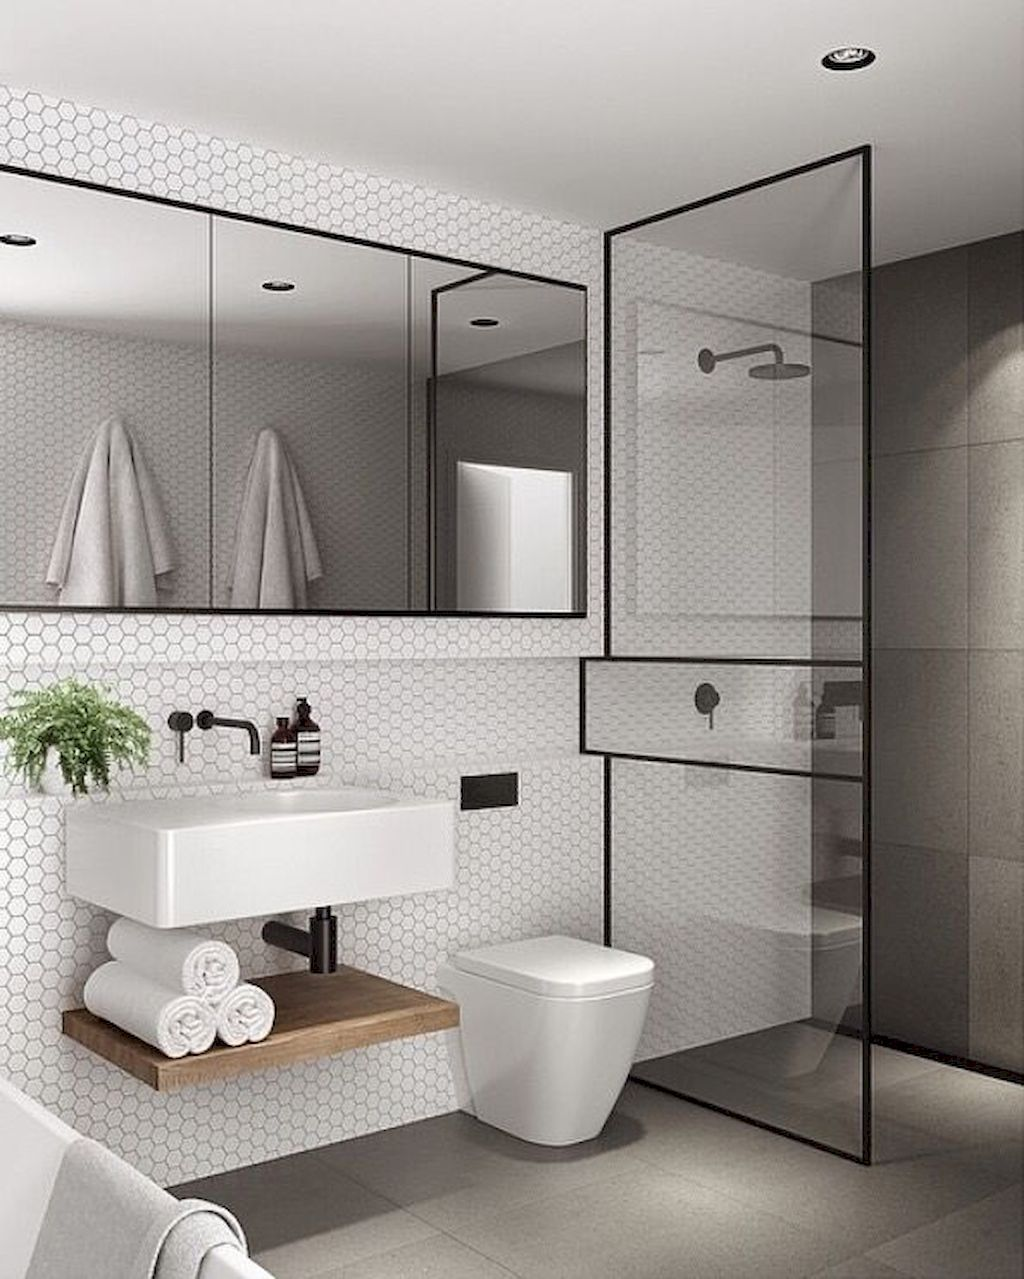 Small Bathroom Design Ideas Apartment Therapy 11 Home Design Bathroom Design Small Modern Modern Small Bathrooms Modern Bathroom Design